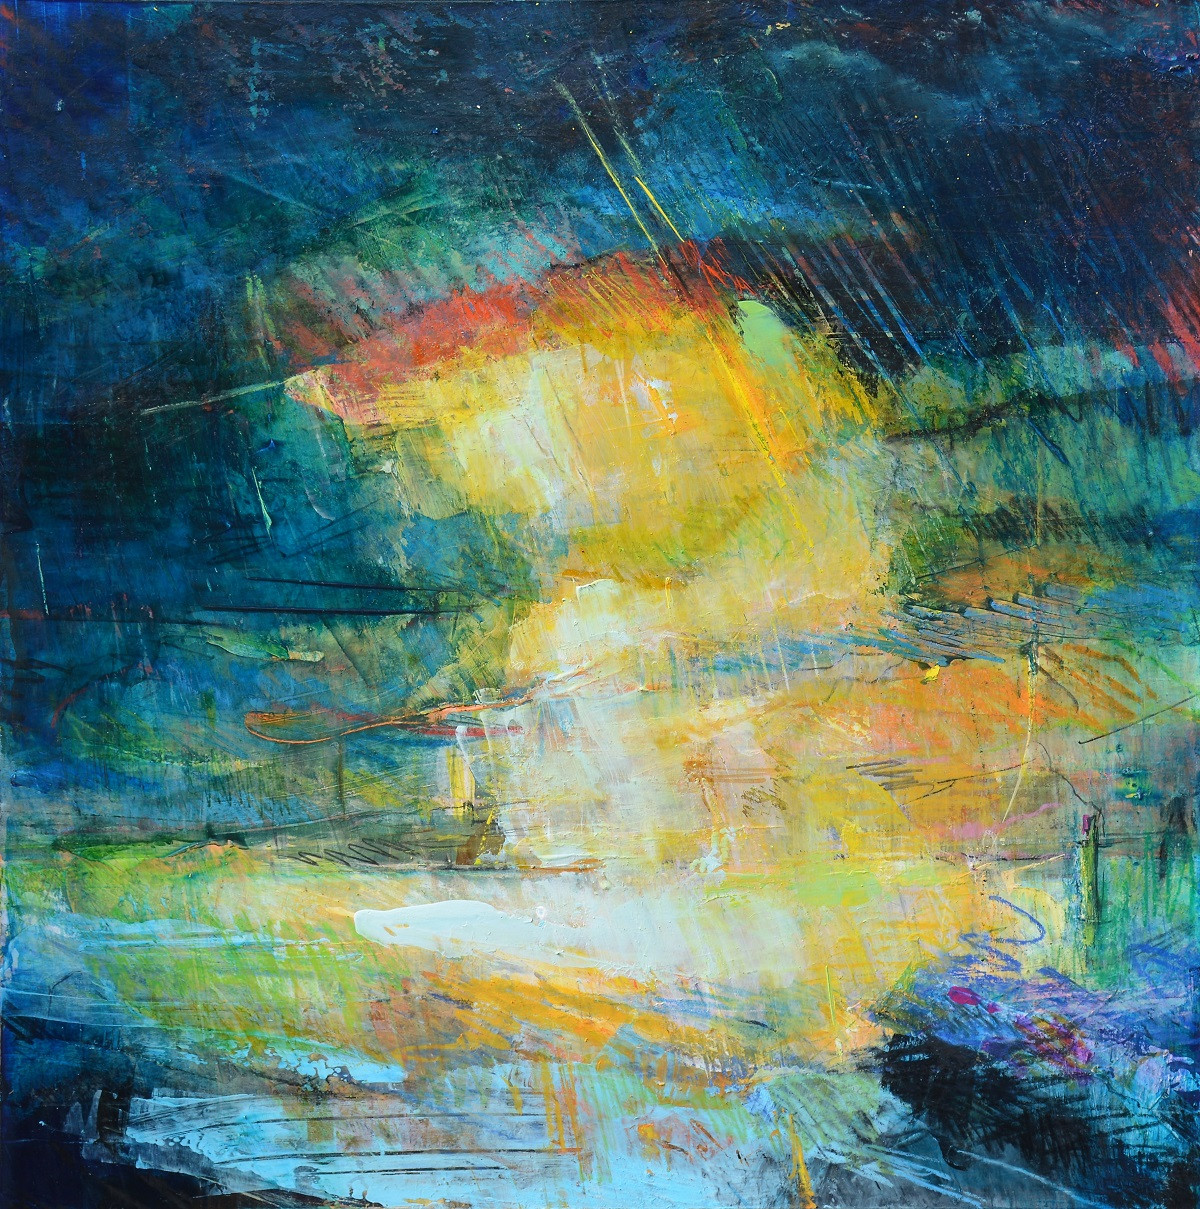 Abstract Landscape on Paper   Kim McAninch